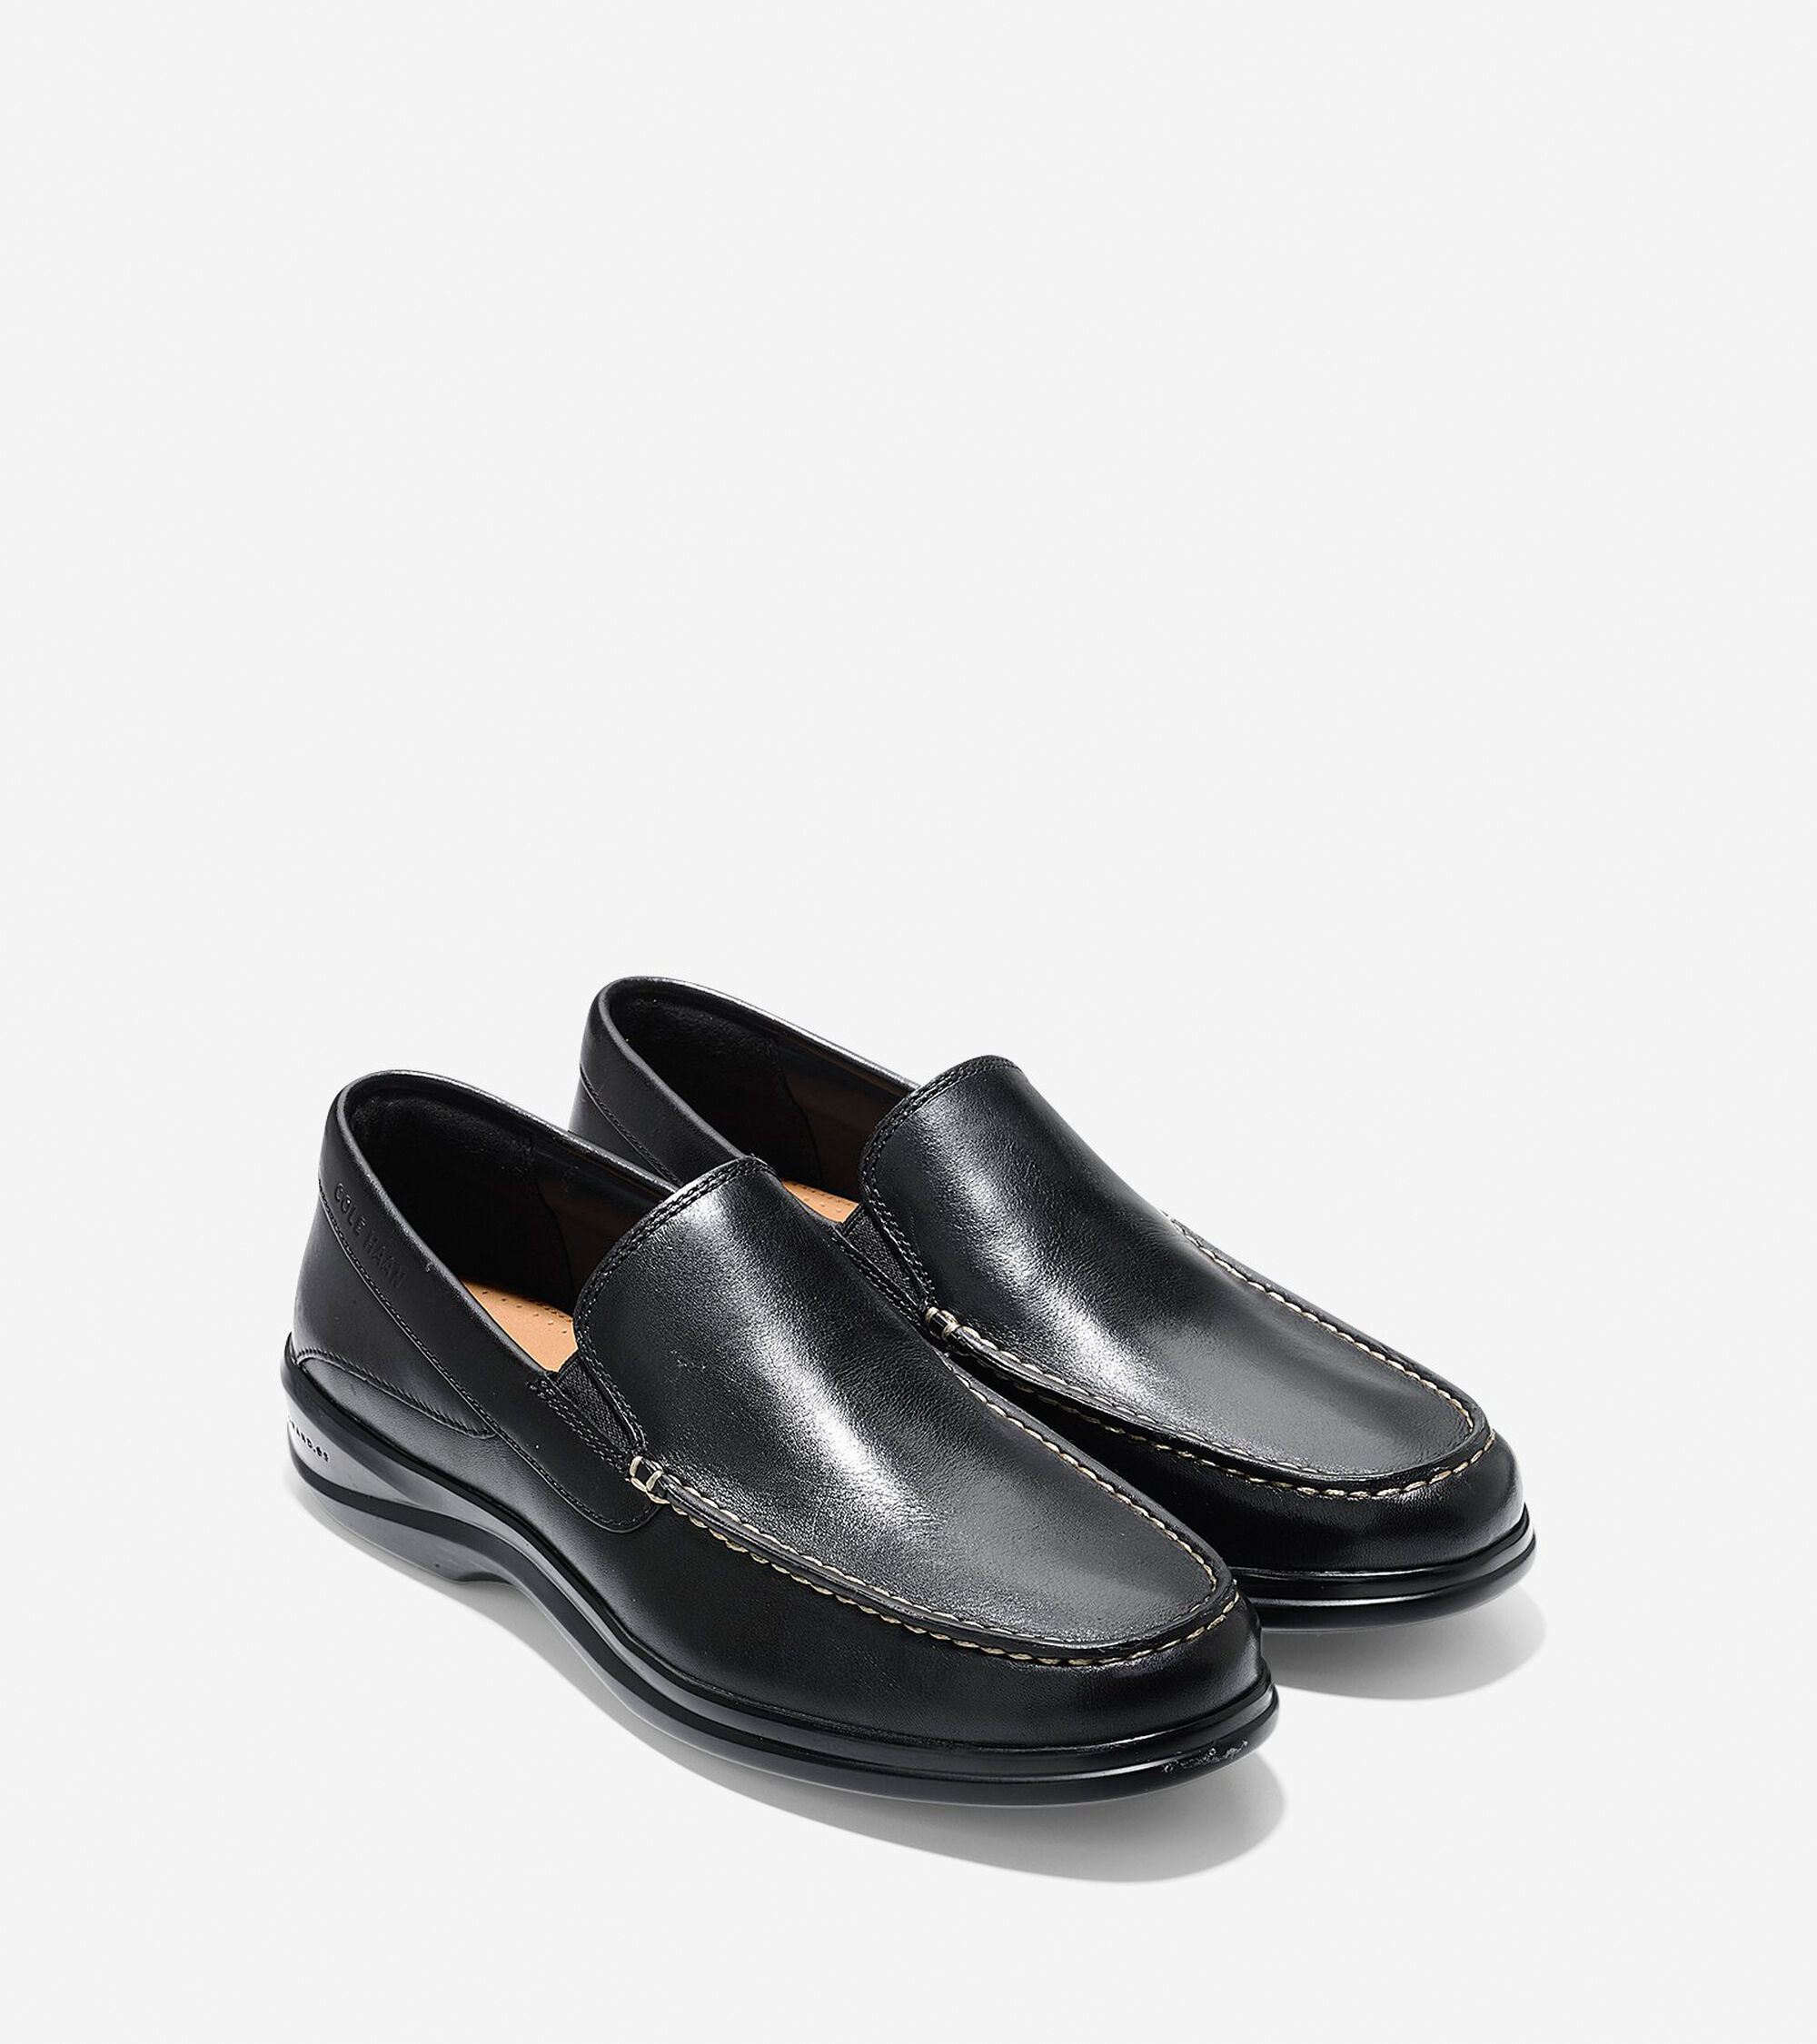 cc19c310ac3 Men s Santa Barbara Twin Gore Loafers in Black